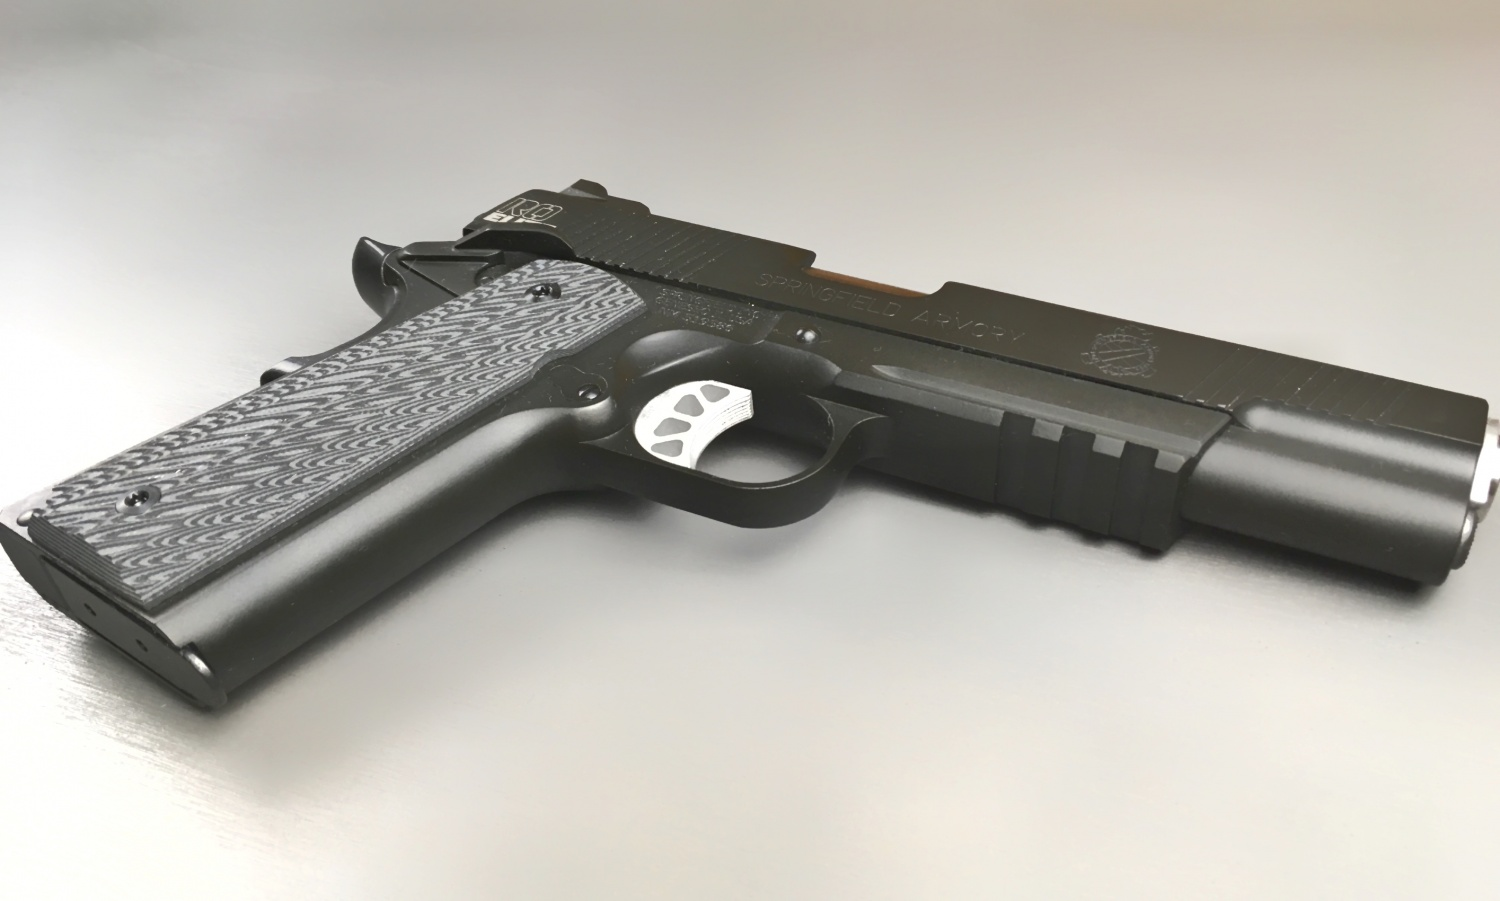 TFB REVIEW: Springfield Armory Range Officer Elite -The